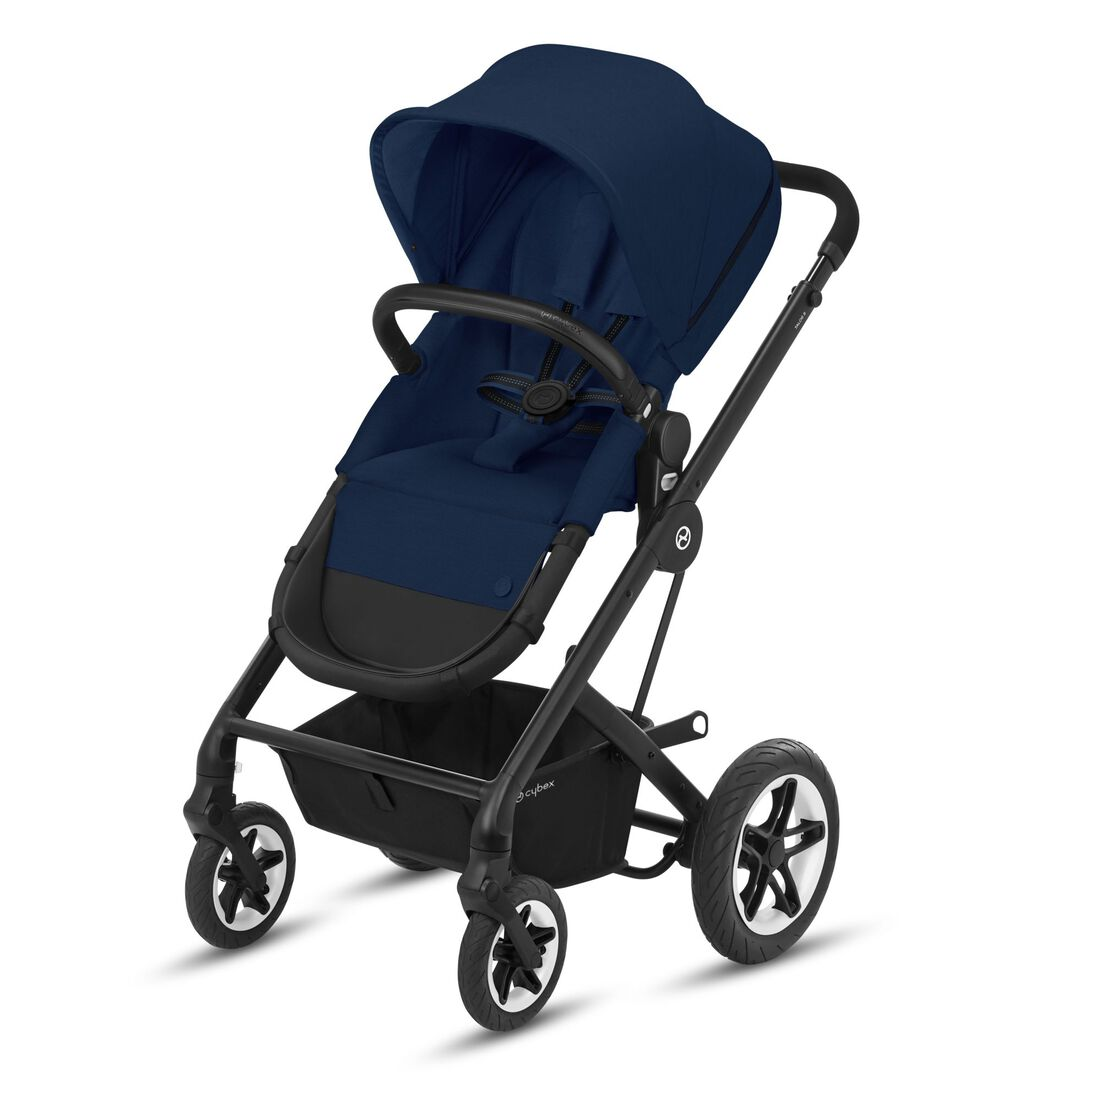 CYBEX Talos S 2-in-1 - Navy Blue in Navy Blue large image number 1